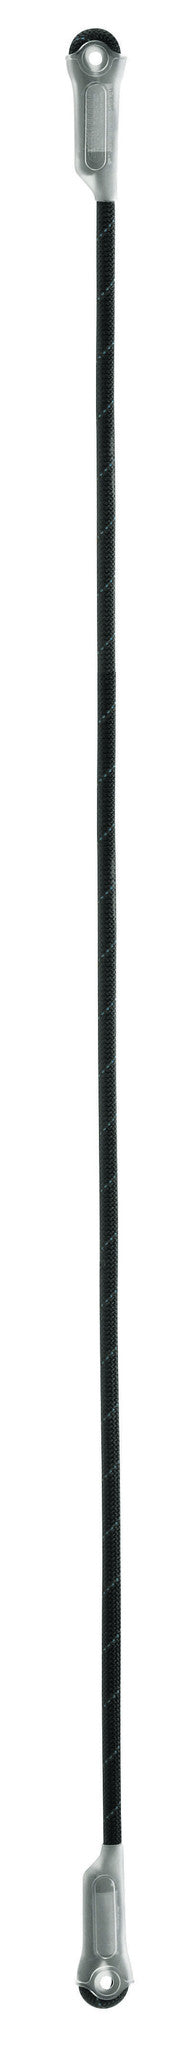 JANE rope lanyard, Black, 200cm